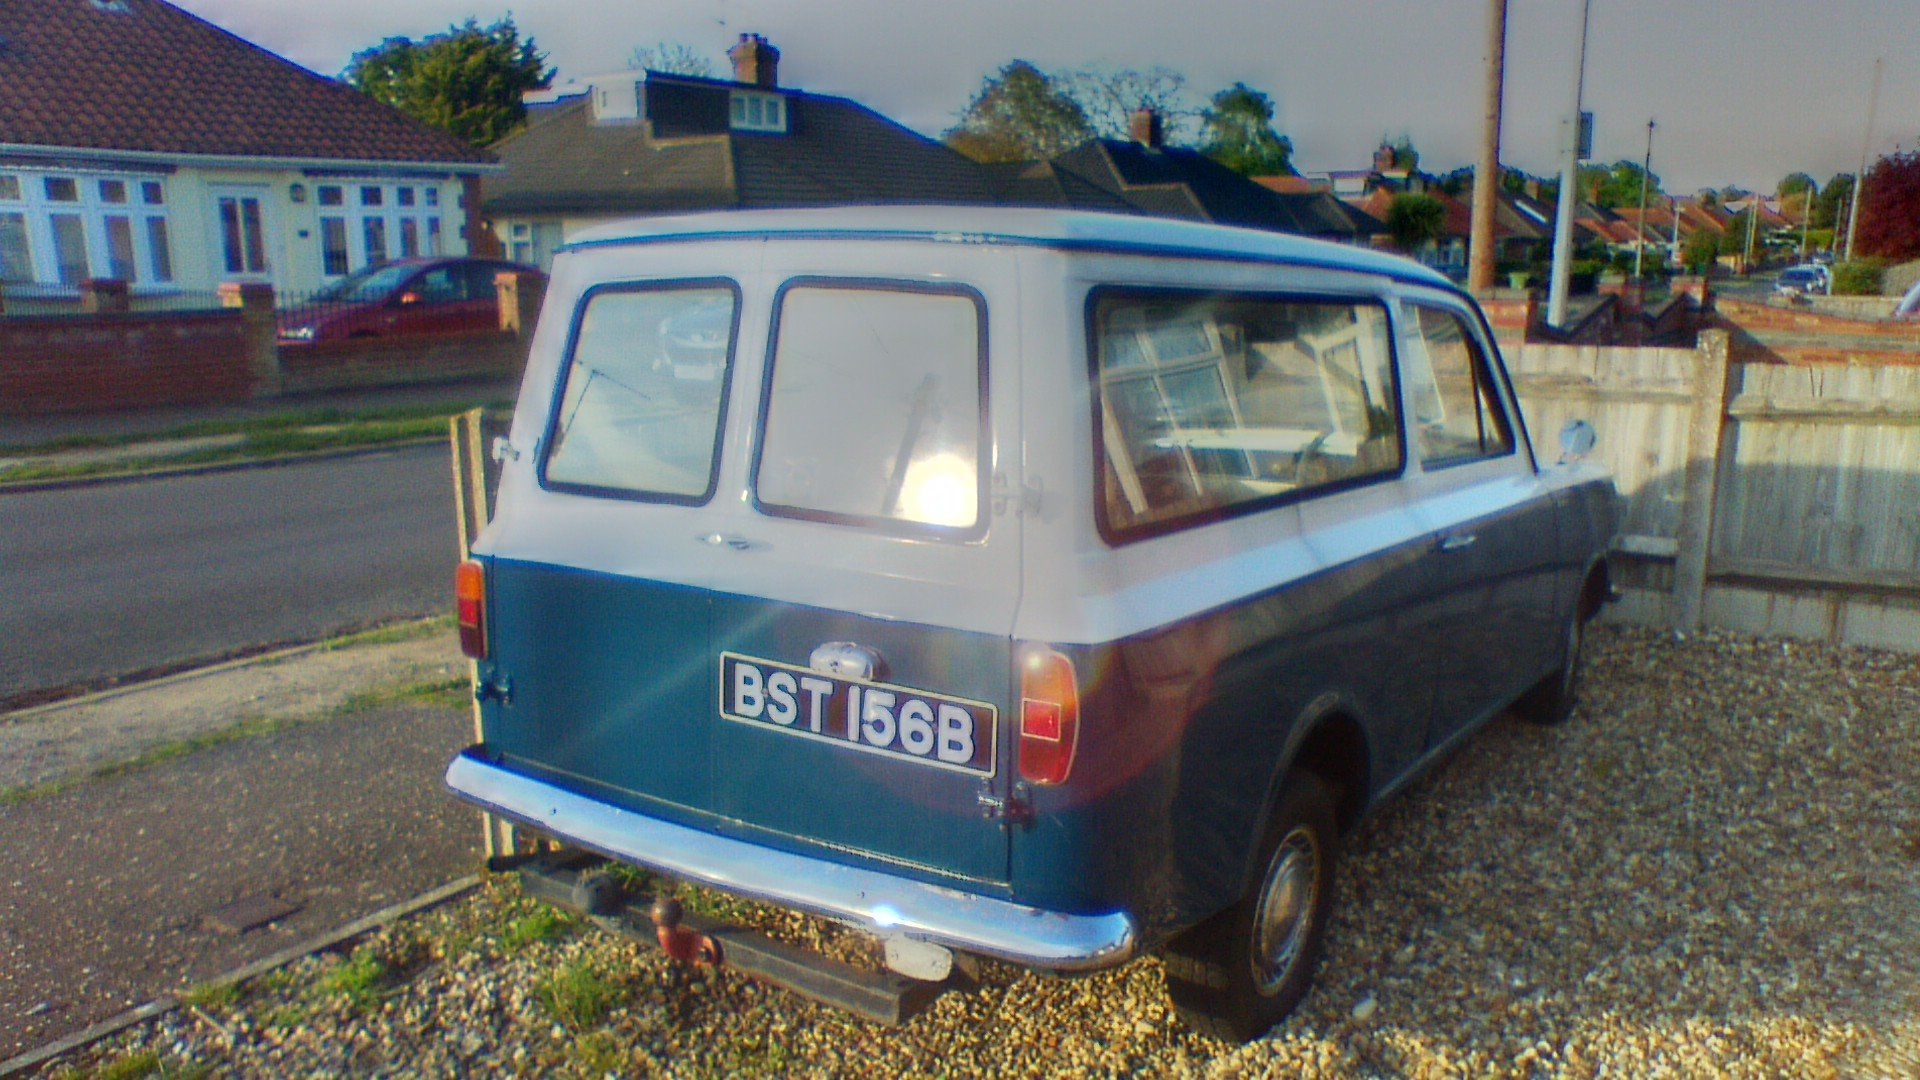 1964 bedford beagle vauxhall ha hb van For Sale (picture 4 of 6)